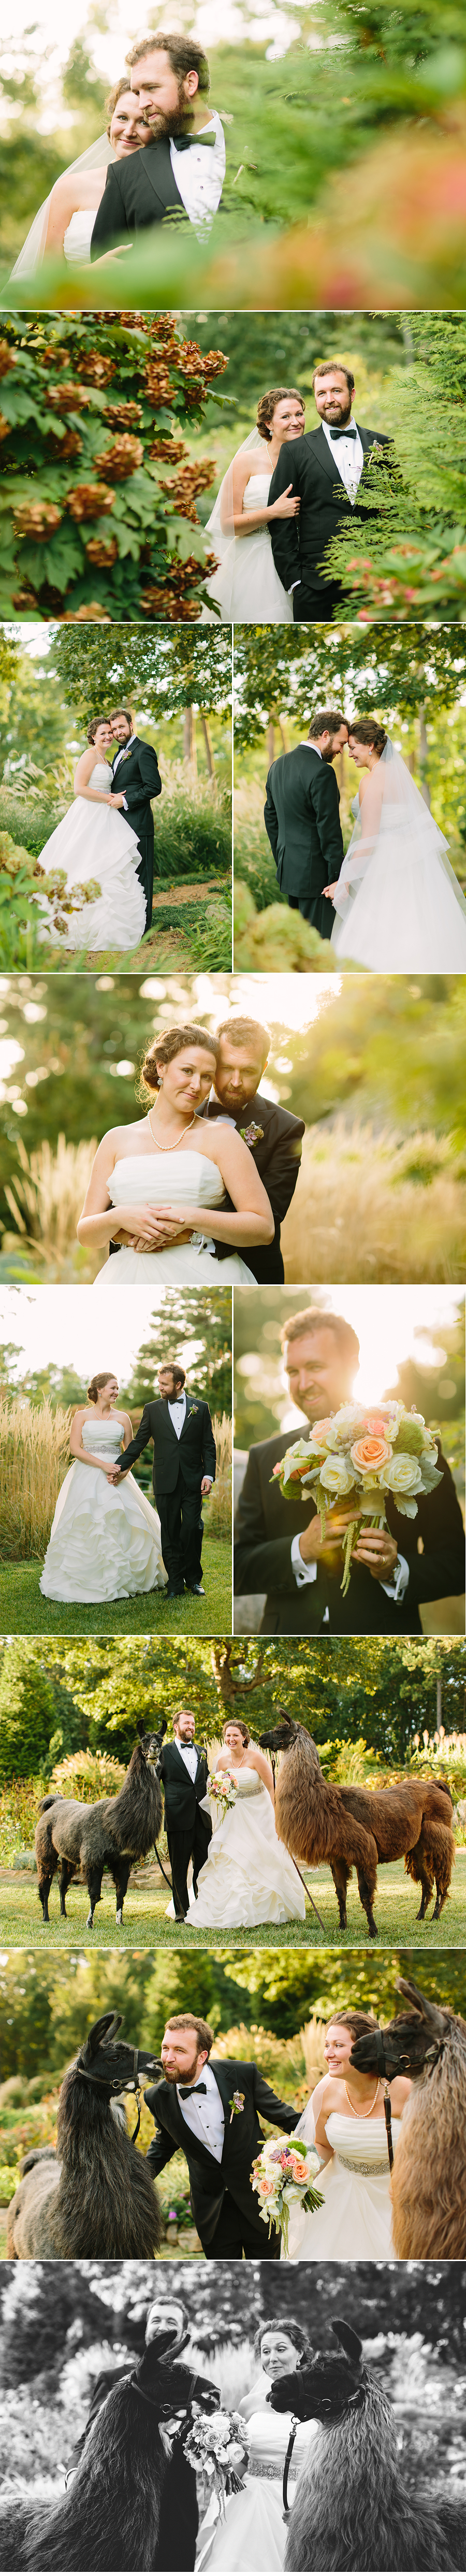 Laurelwood Farm Wedding